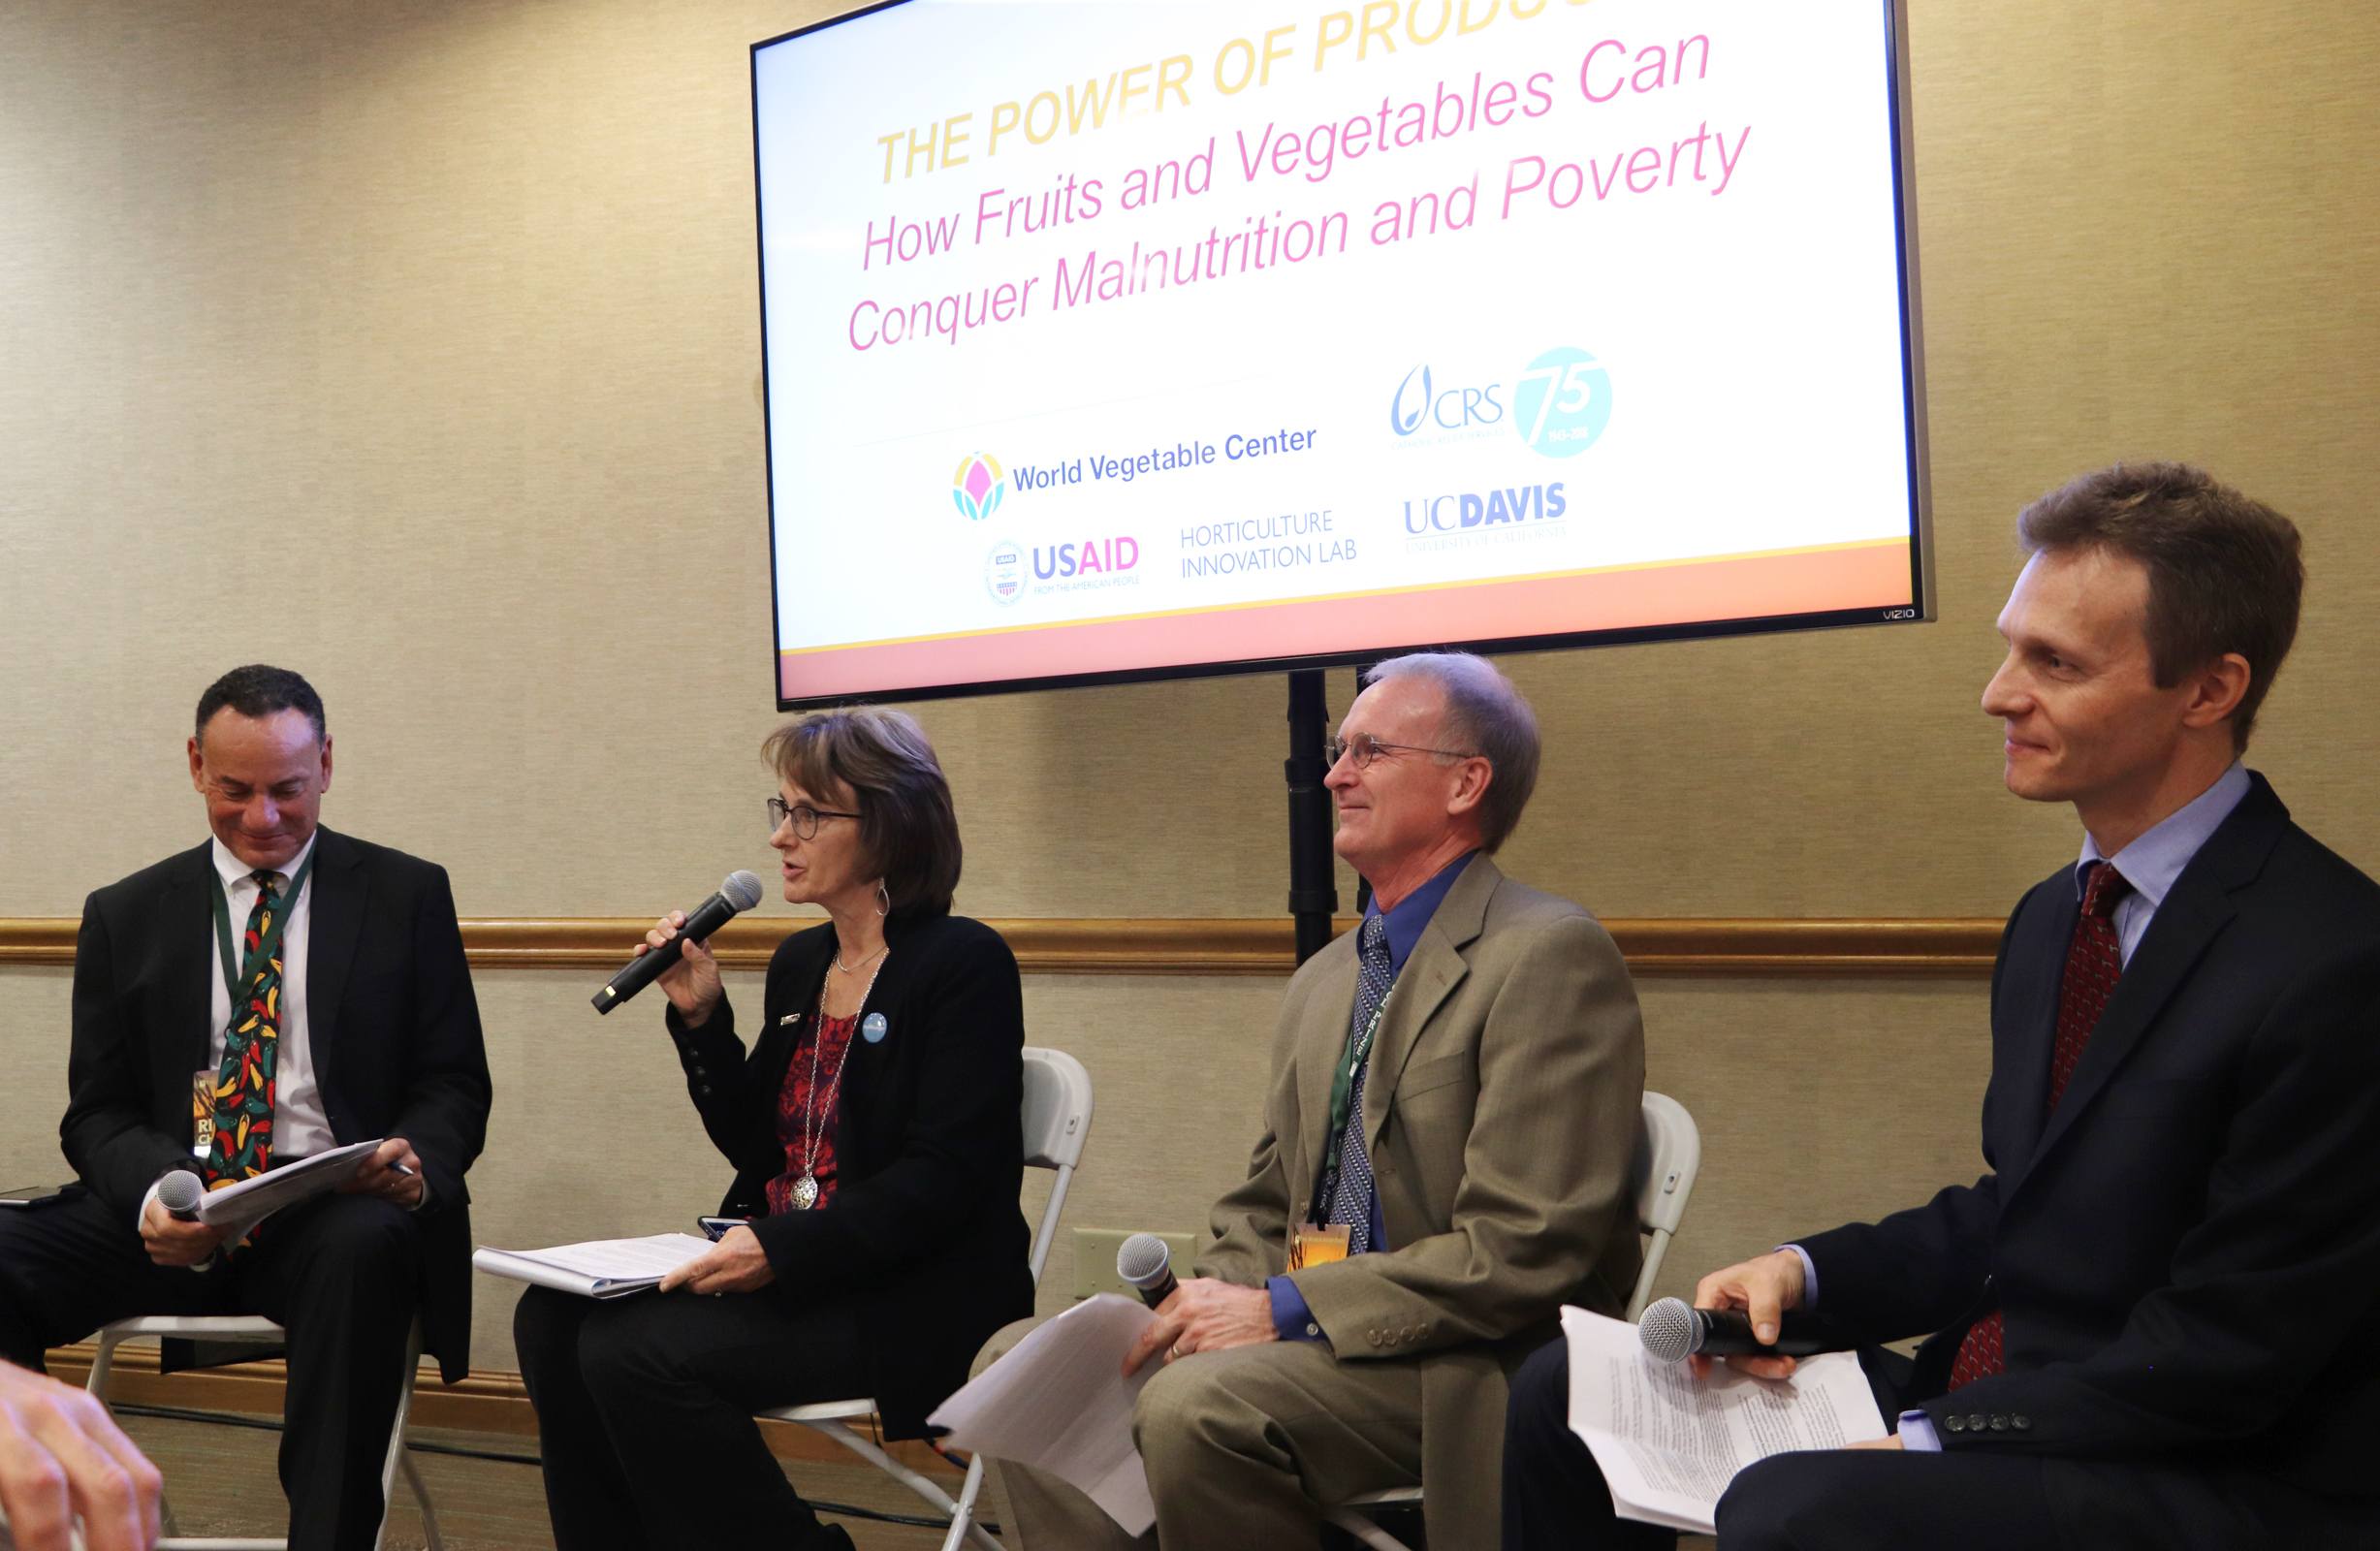 panelists at Power of Produce conference: How fruits and vegetable can conquer malnutrition and poverty